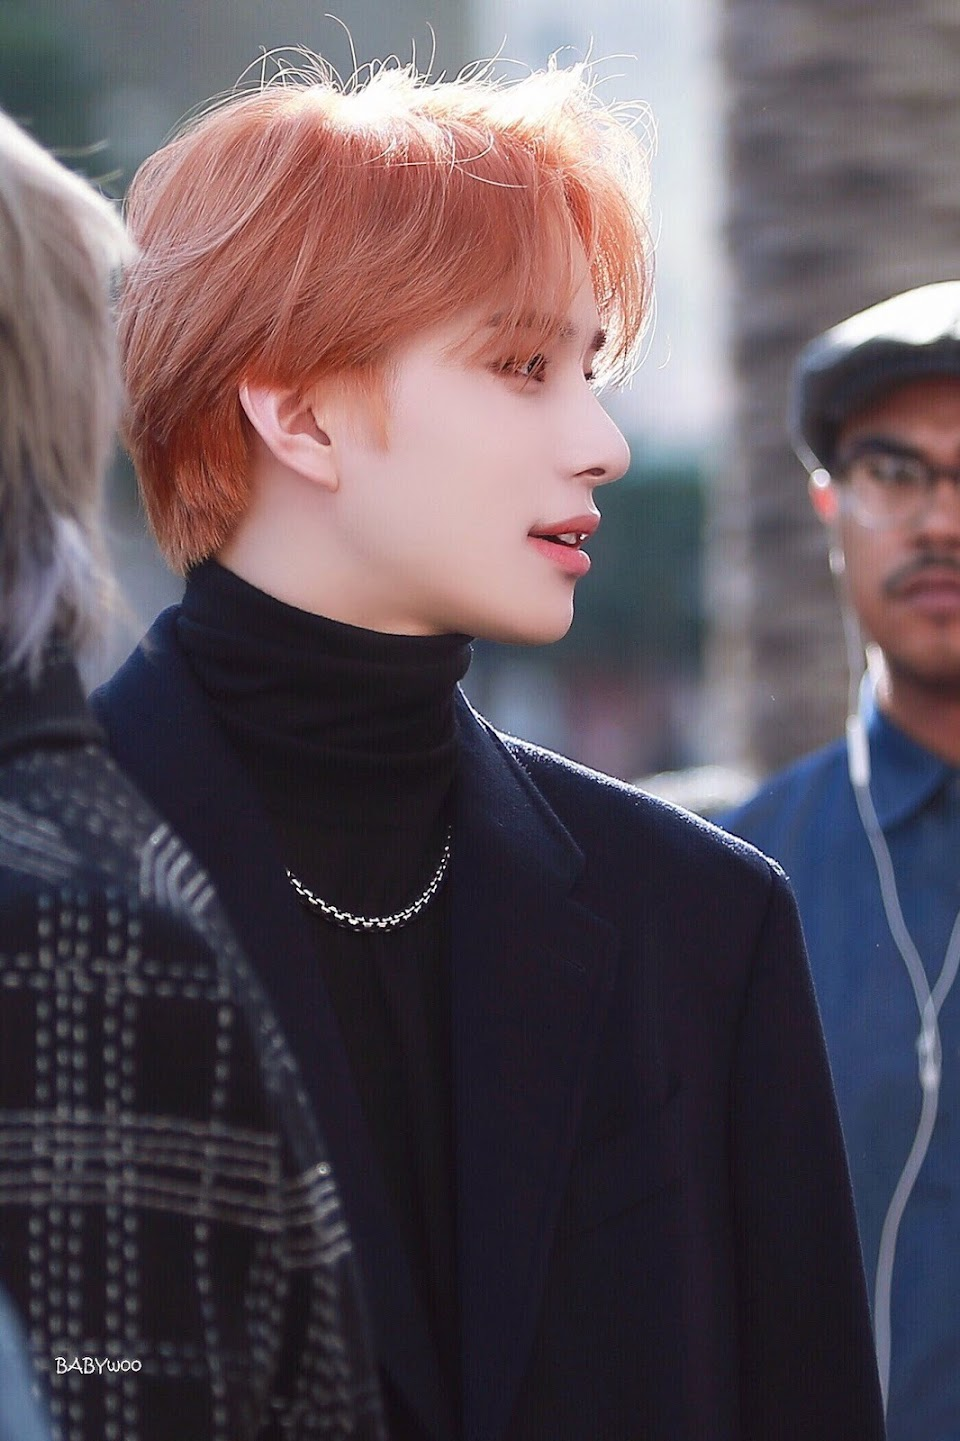 jungwoo profile 5